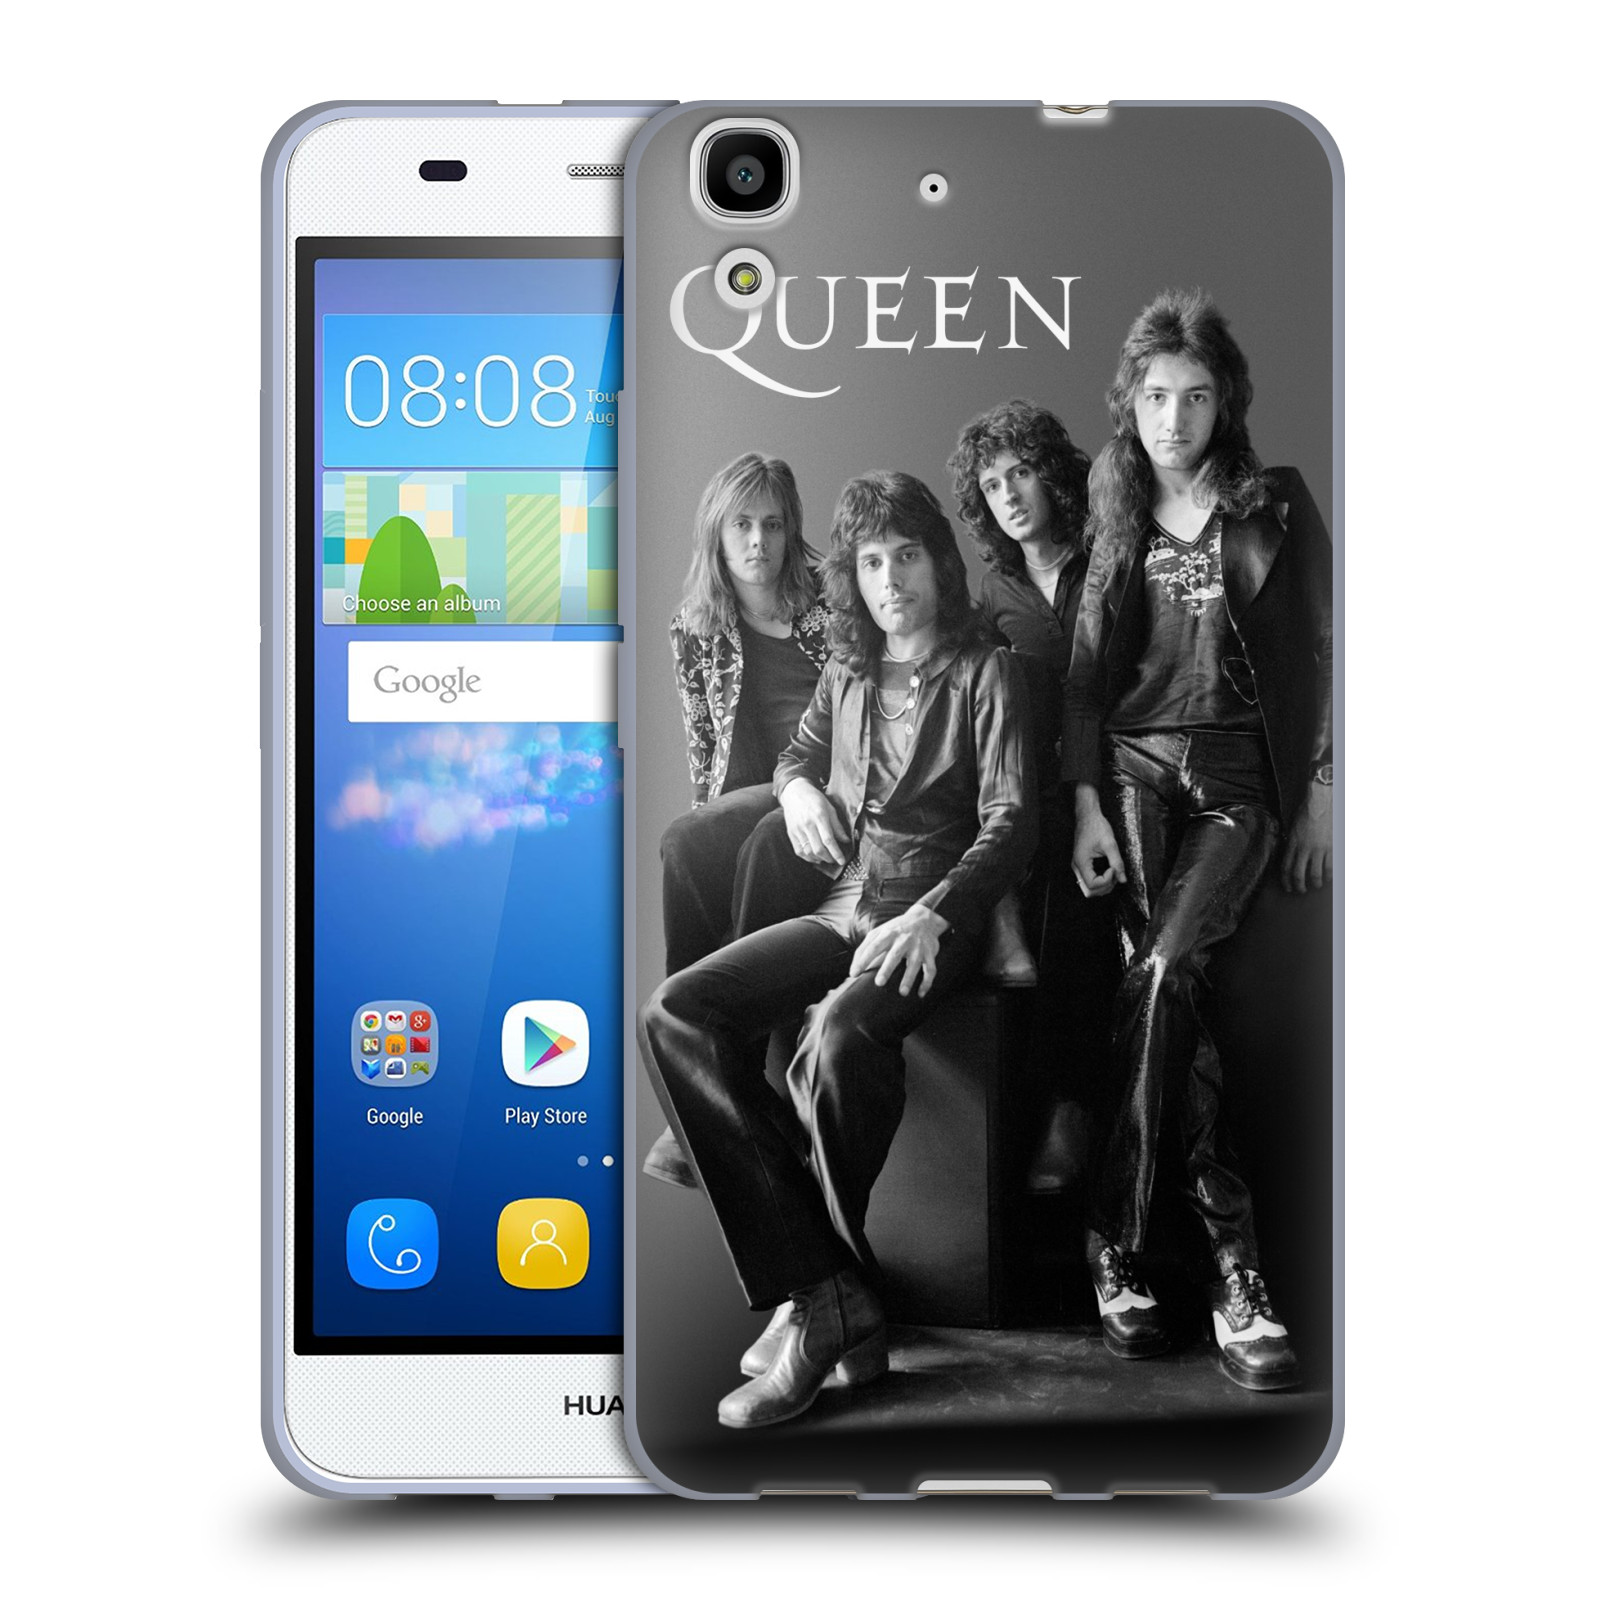 Silikonové pouzdro na mobil Huawei Y6 HEAD CASE Queen - Skupina